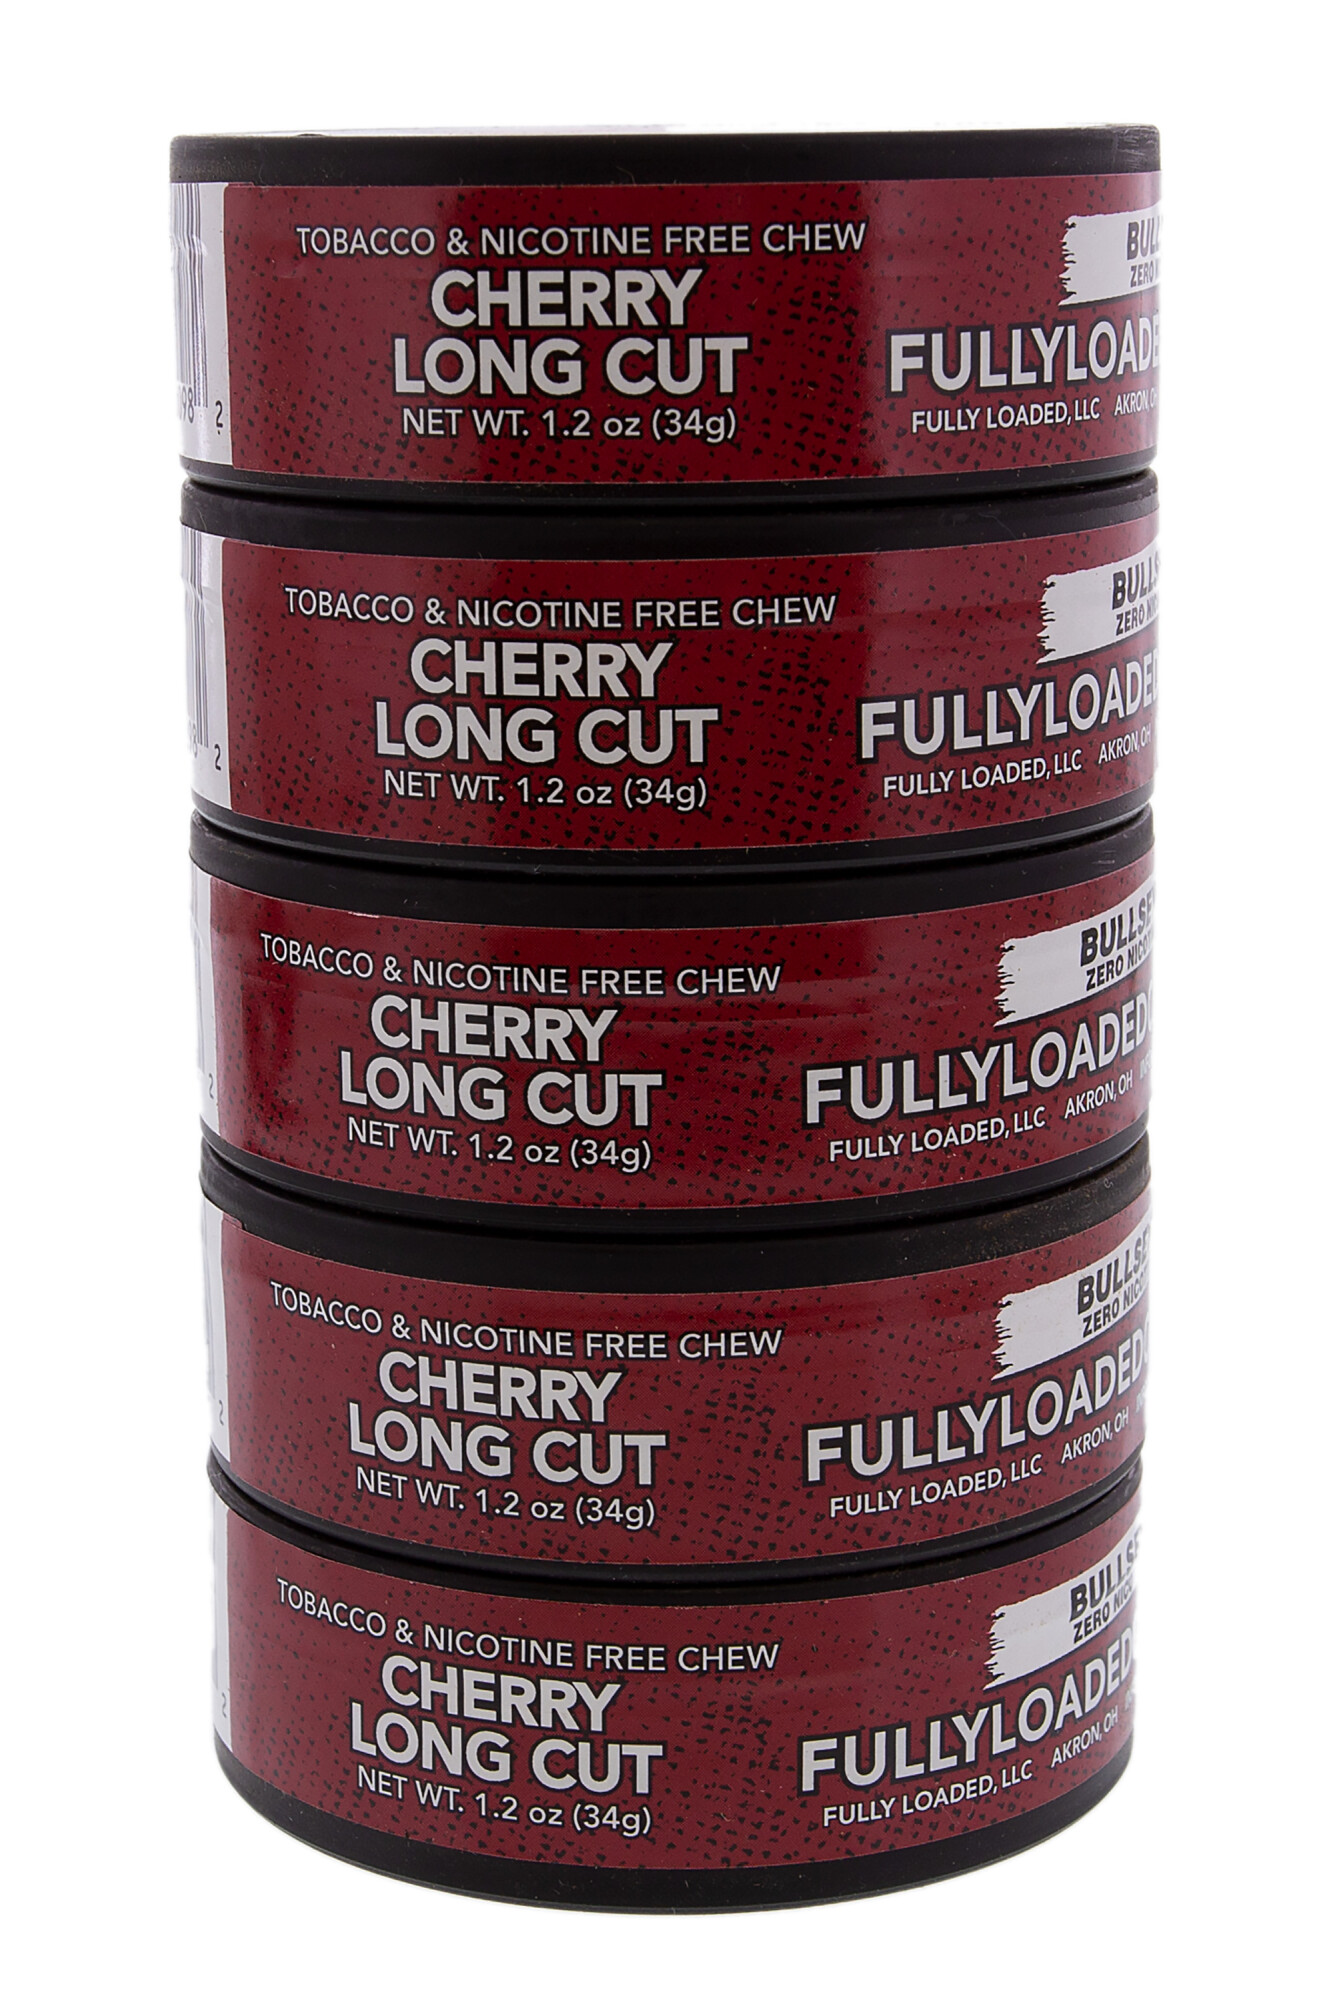 Fully Loaded Chew Tobacco and Nicotine Free Cherry Bullseye Long Cut Rich Flavor, Chewing Alternative-5 Cans